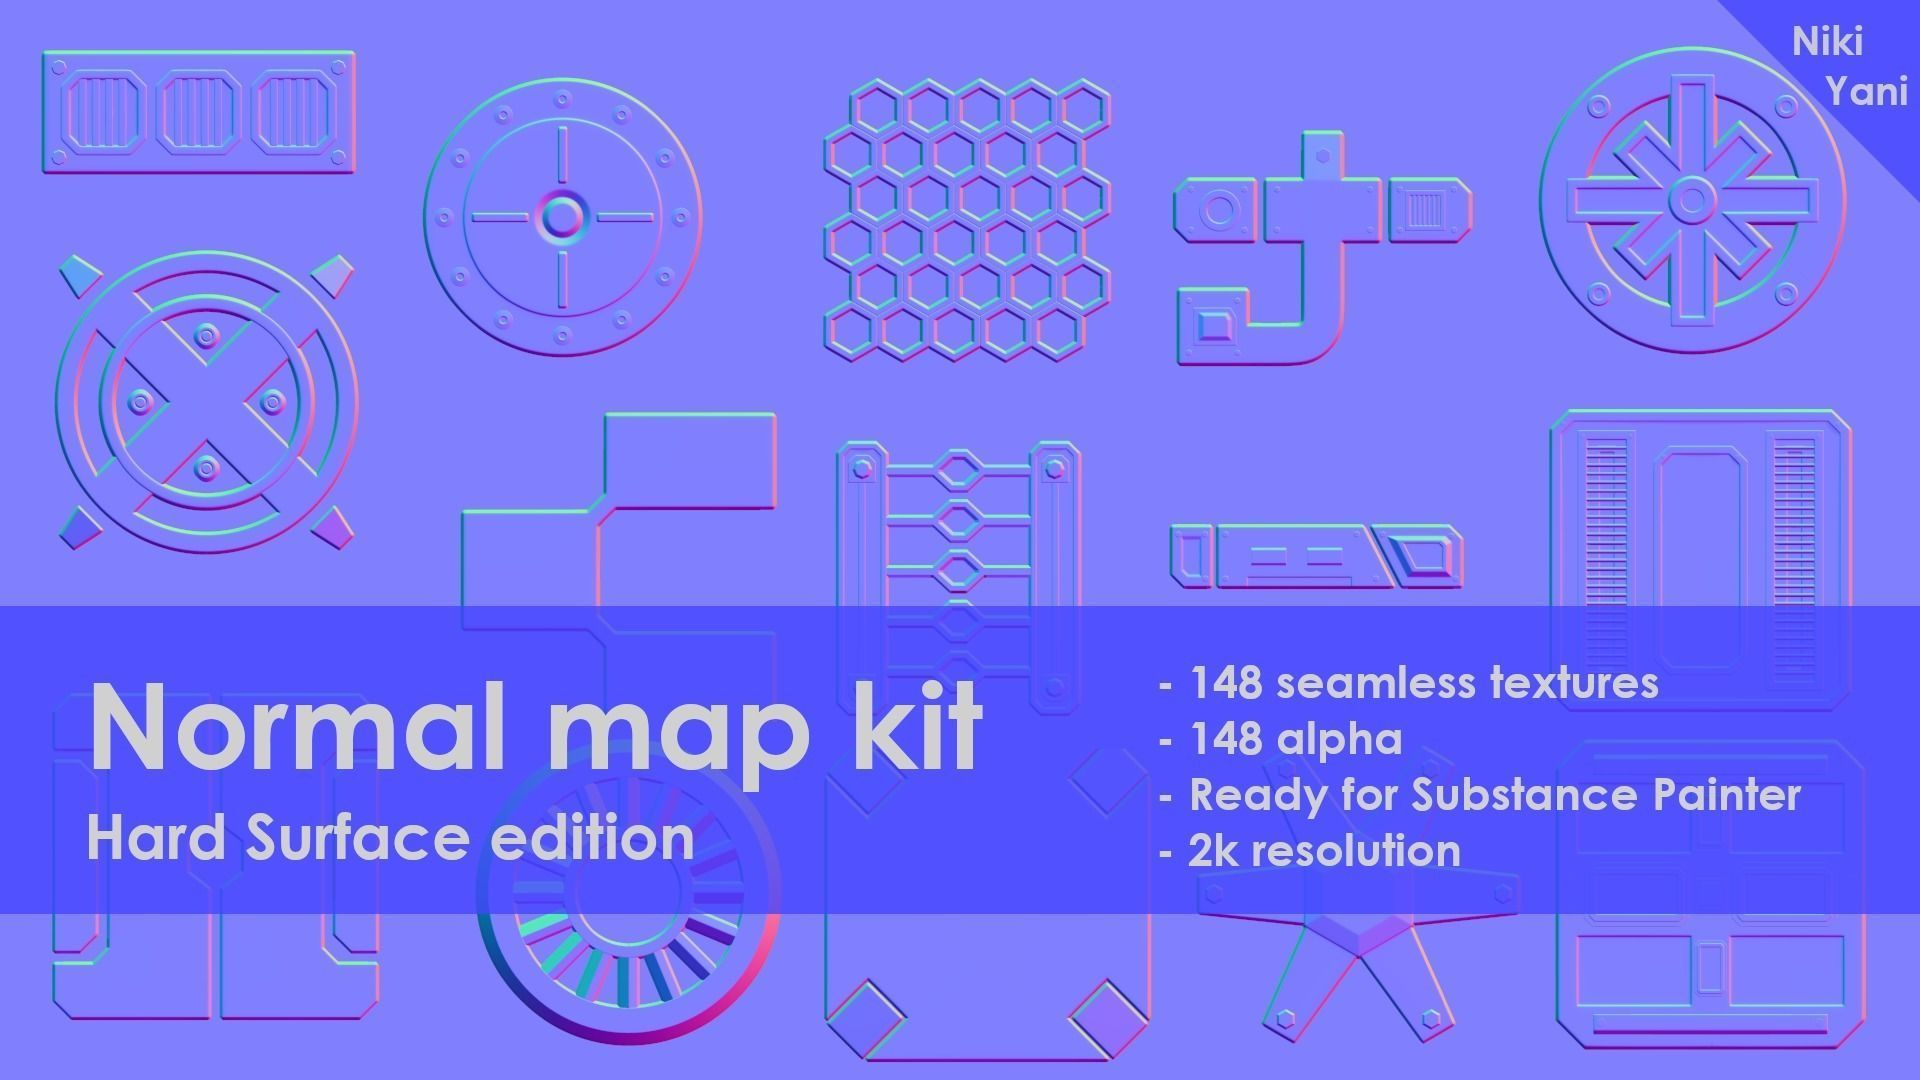 Normal map kit Hard Surface edition | Texture